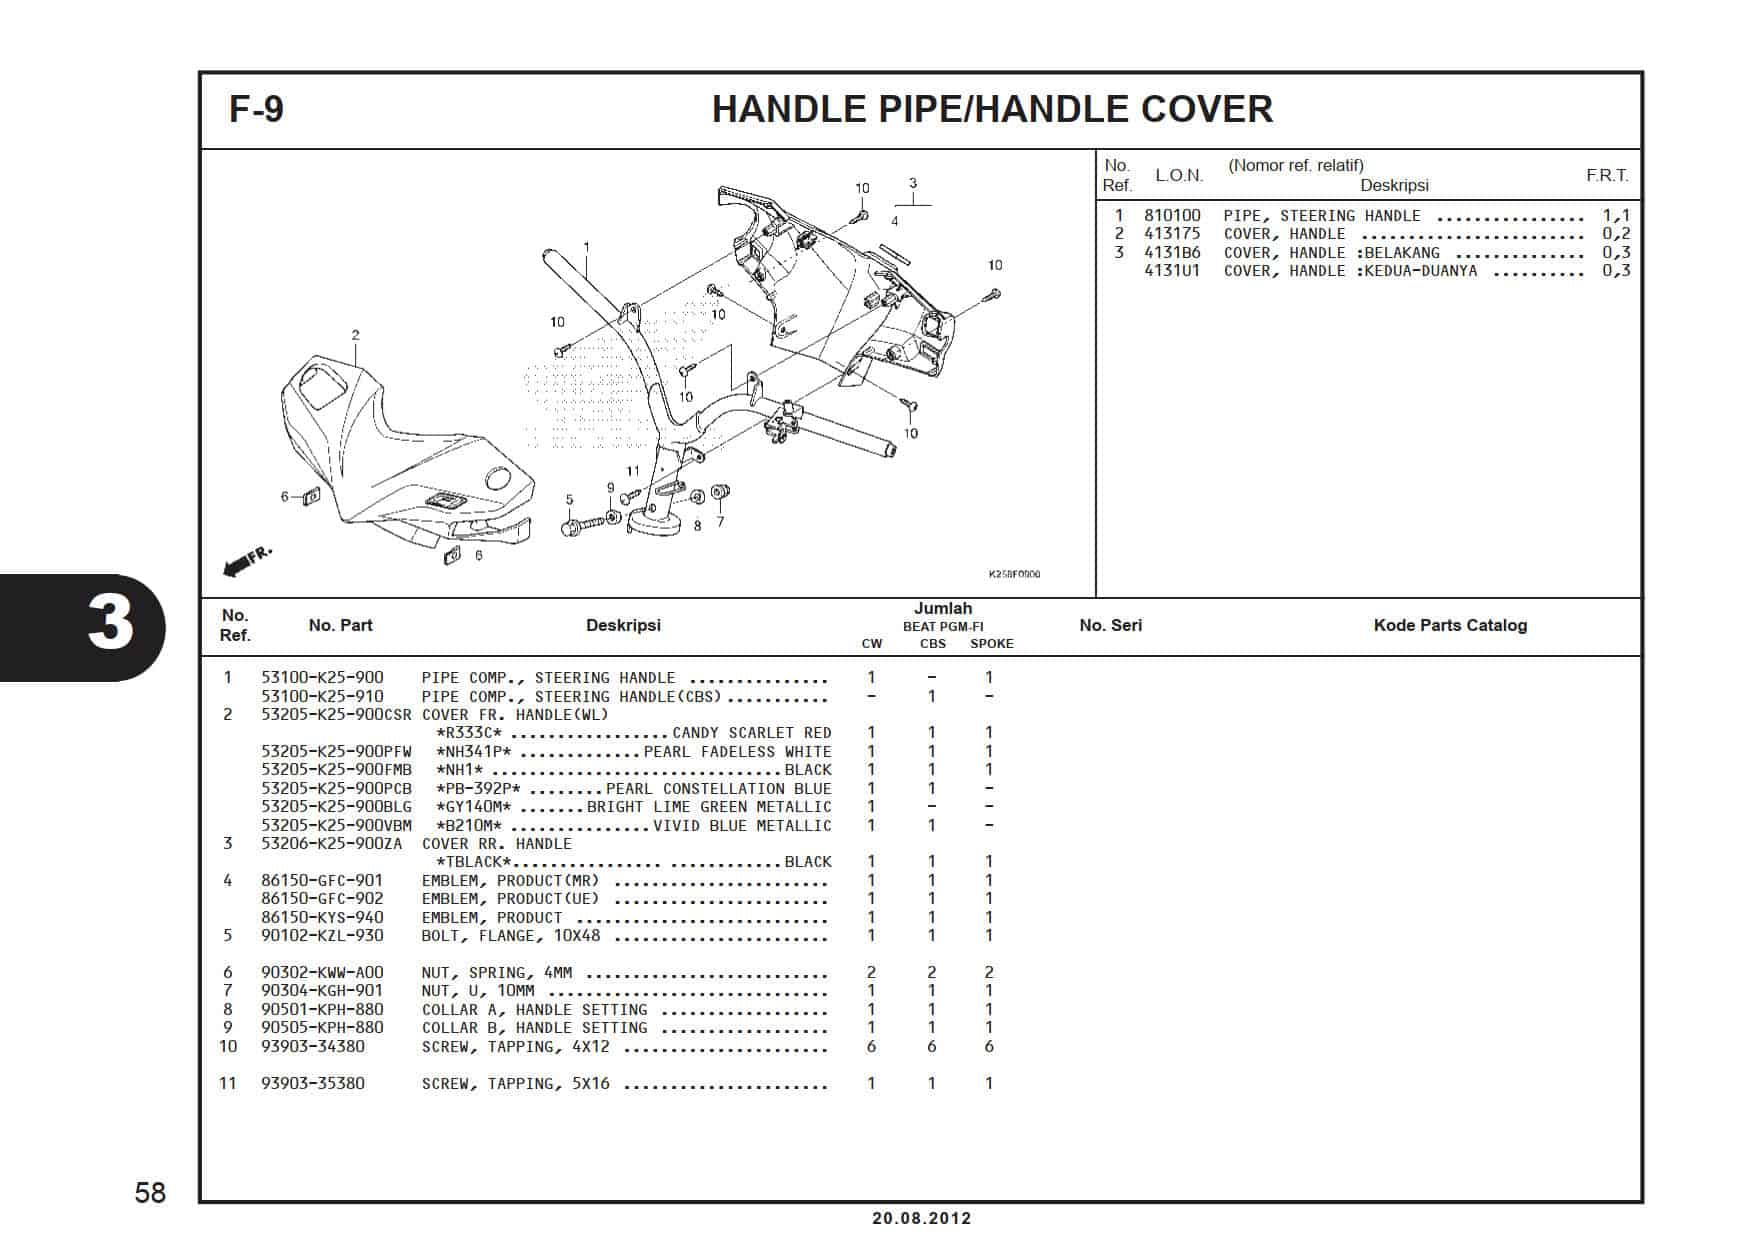 F-9 Handle Pipe/Handle Cover